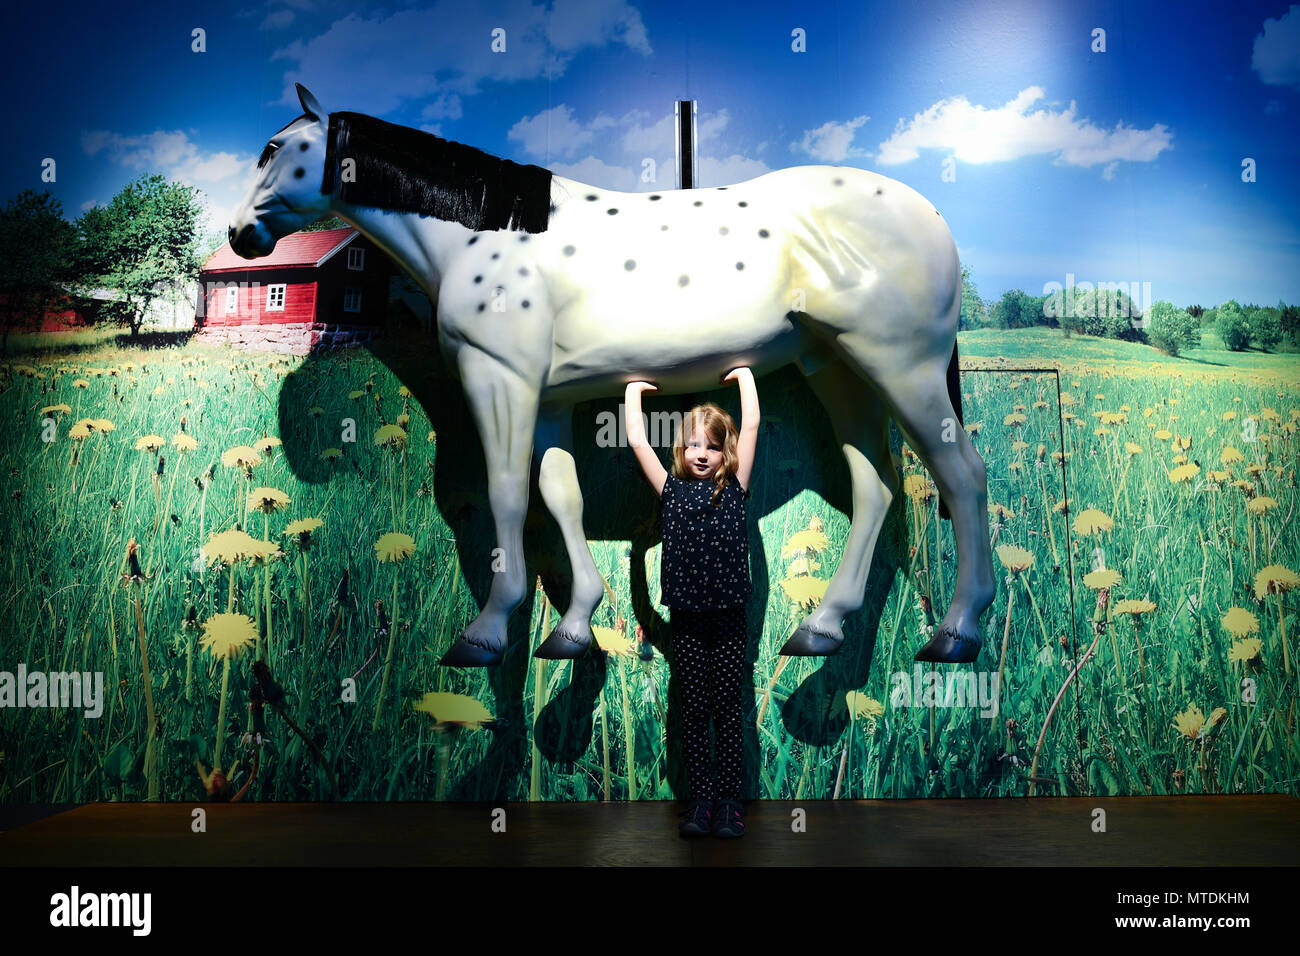 """dpatop - 30 May 2018, Germany, Speyer: Ida holds up a replica of a horse in the area dedicated to Astrid Lindgren's creation Pippi Longstocking at the exhibition """"Das Sams und die Helden der Kinderbuecher"""" (lit. """"Sams and the heroes of childrens' books"""") at the Historical Museum of Rhineland-Palatinate. The exhibition is running from 01 June 2018 to 06 January 2019. Photo: Uwe Anspach/dpa Stock Photo"""